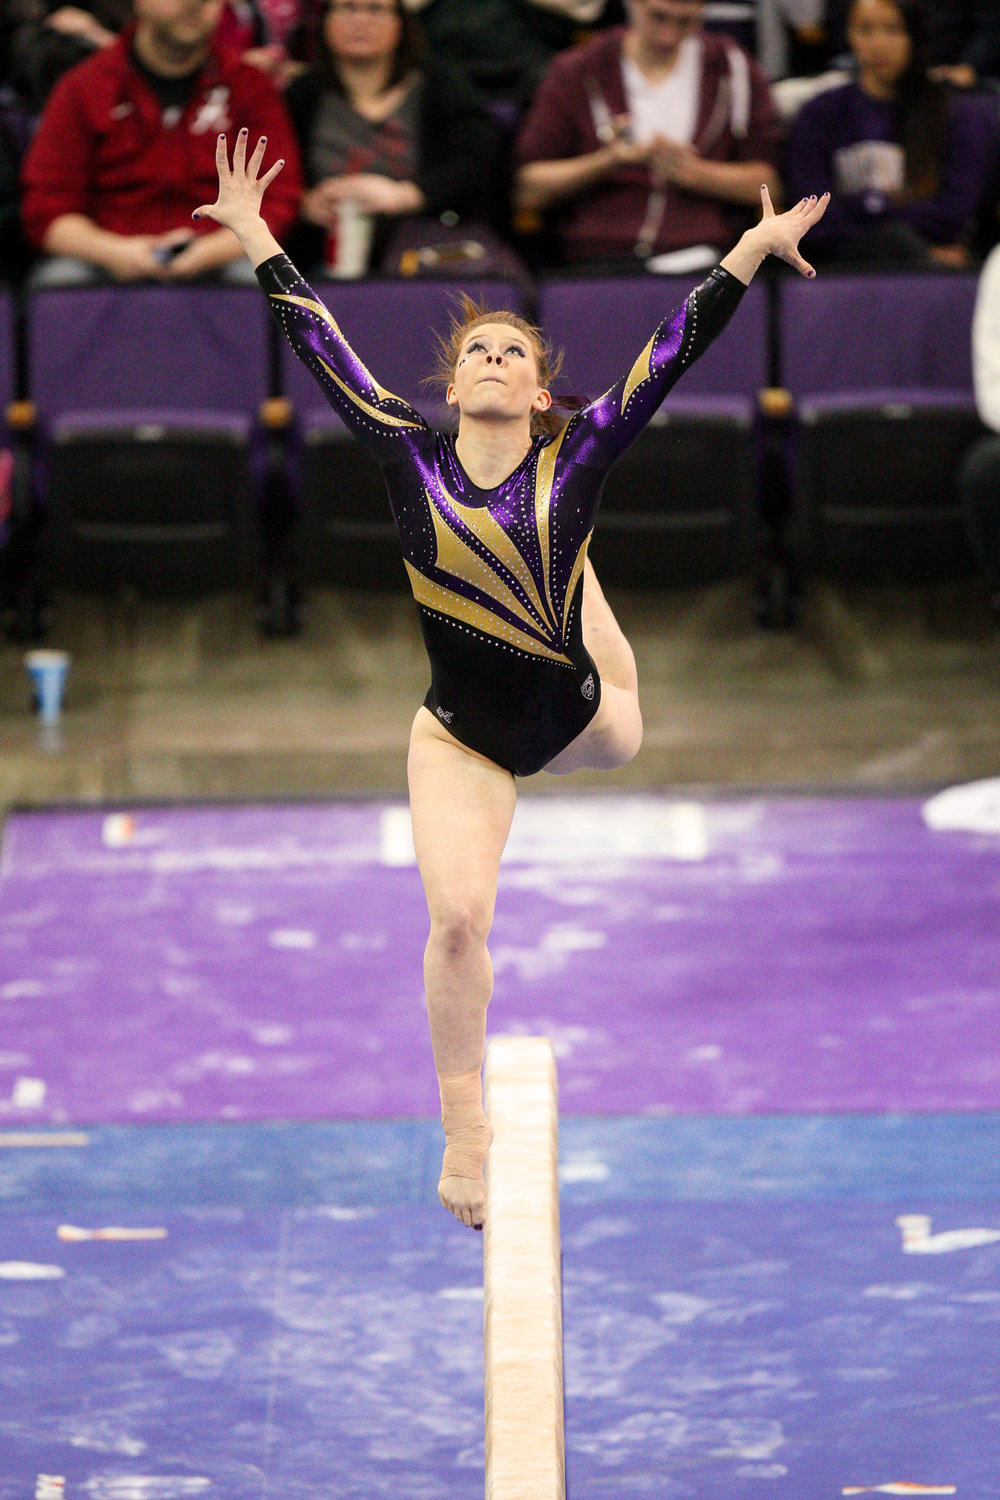 University of Washington Huskies Gymnast Jackie McCartin on Beam